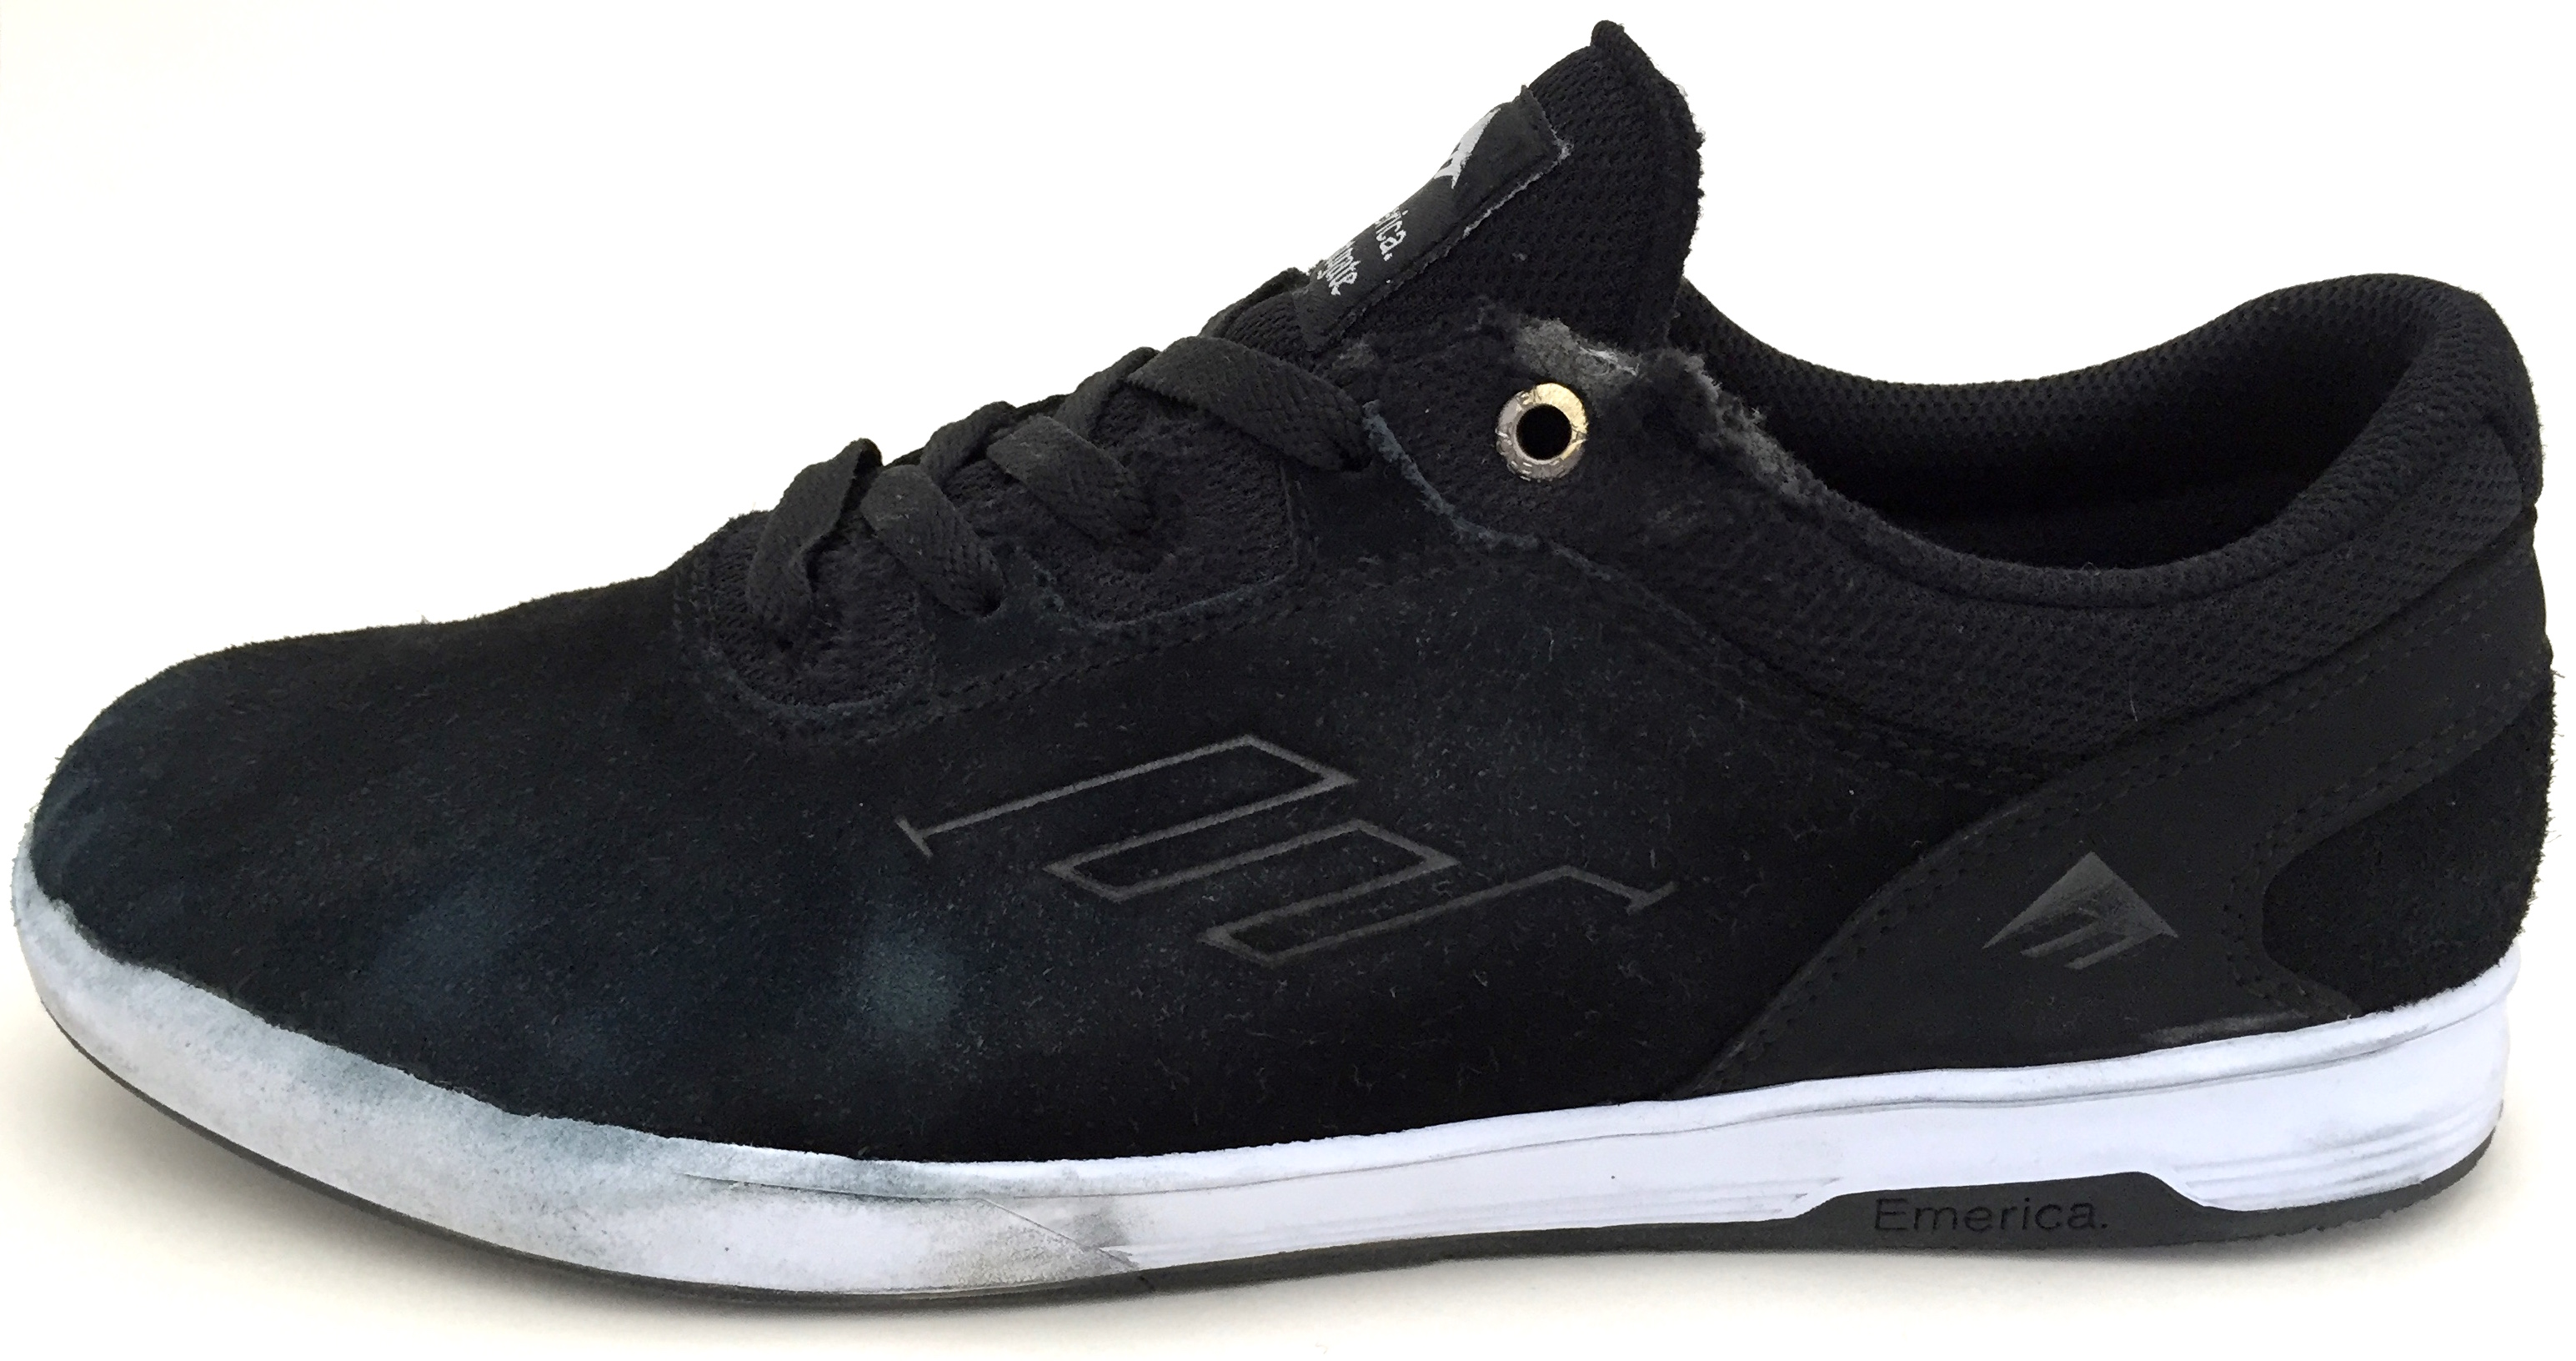 Emerica Westgate CC & & & Westgate Mid Vulc Weartested detailed   fd03cb